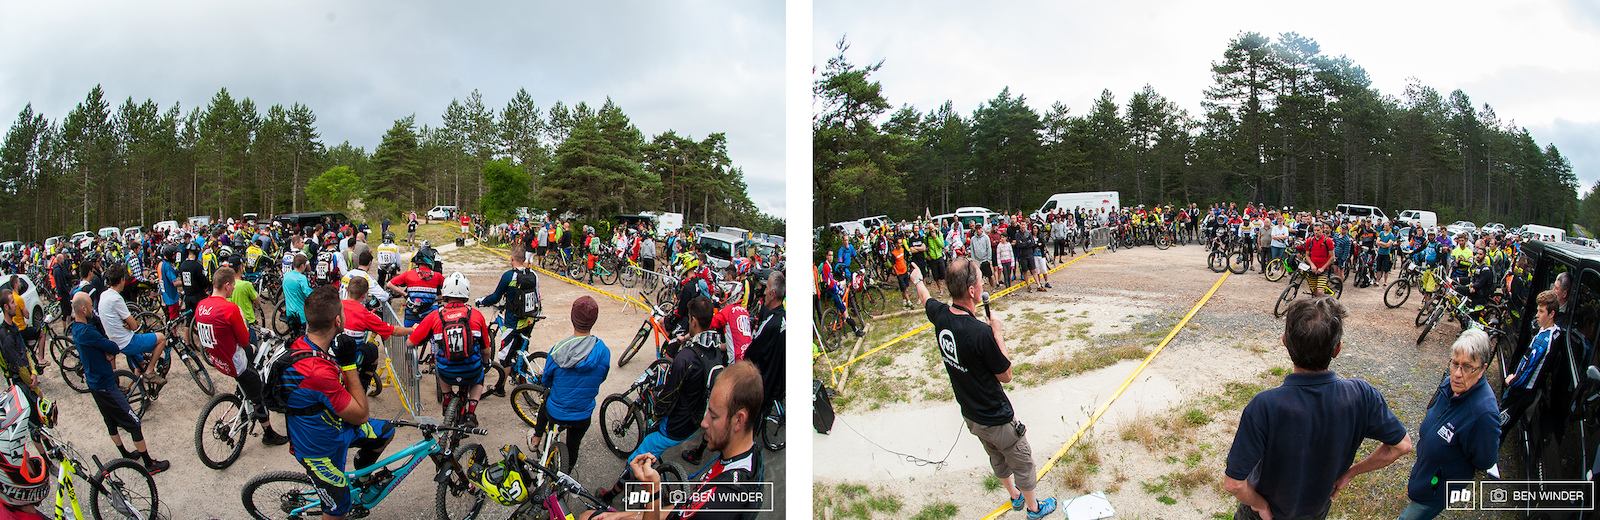 The riders briefing took place at 8.30 just before the start of Stage 1.